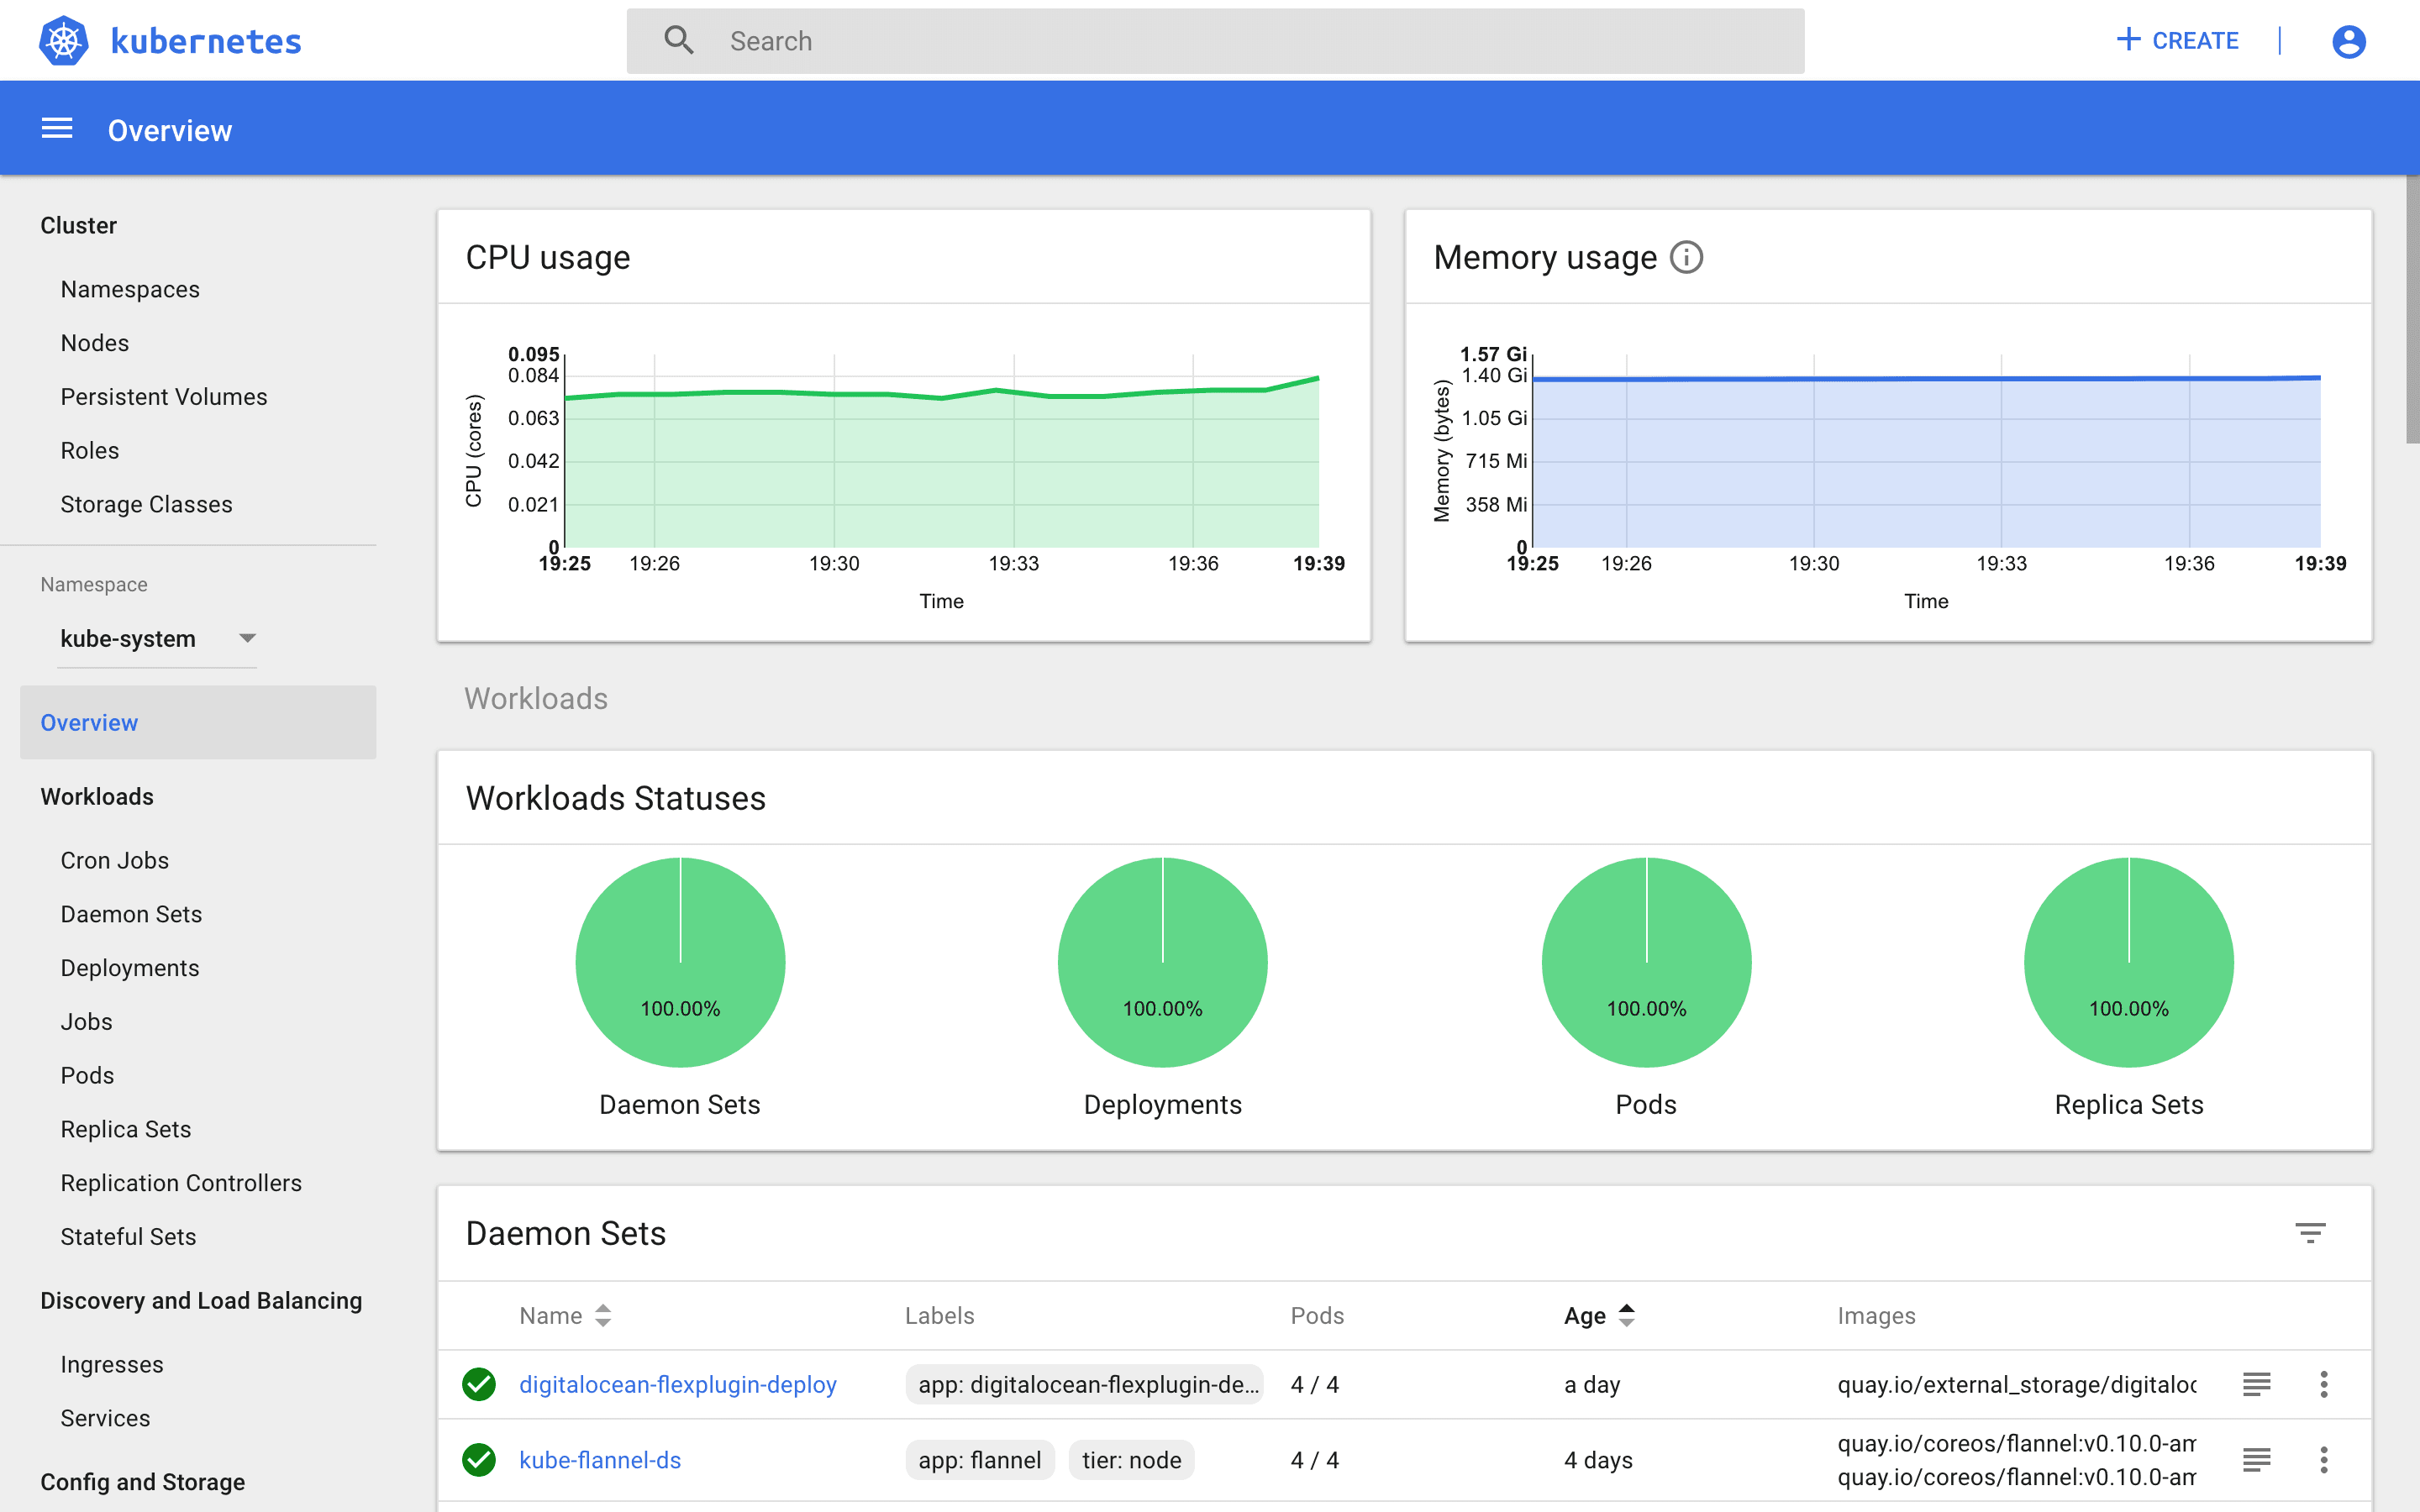 Install Kubernetes Dashboard - Part III